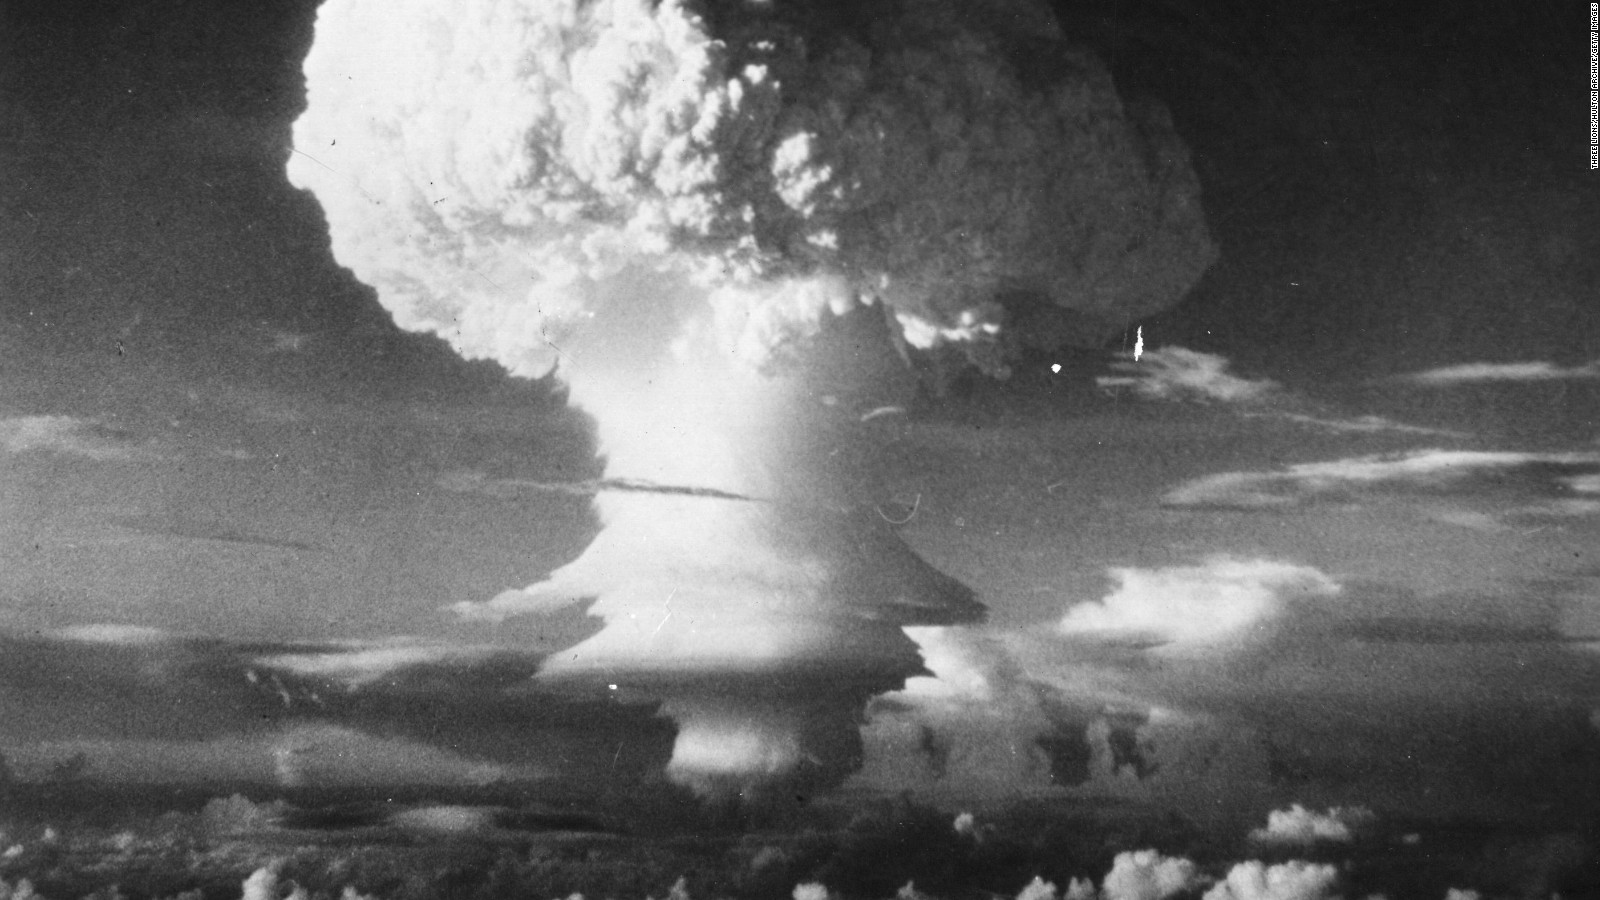 a report on the atomic bomb The story of the atomic bomb started around the turn of the century when a small number of physicists began to think about, discuss, and publish papers about the phenomenon of radioactivity, the behavior of alpha particles, and the properties of various materials when irradiated.